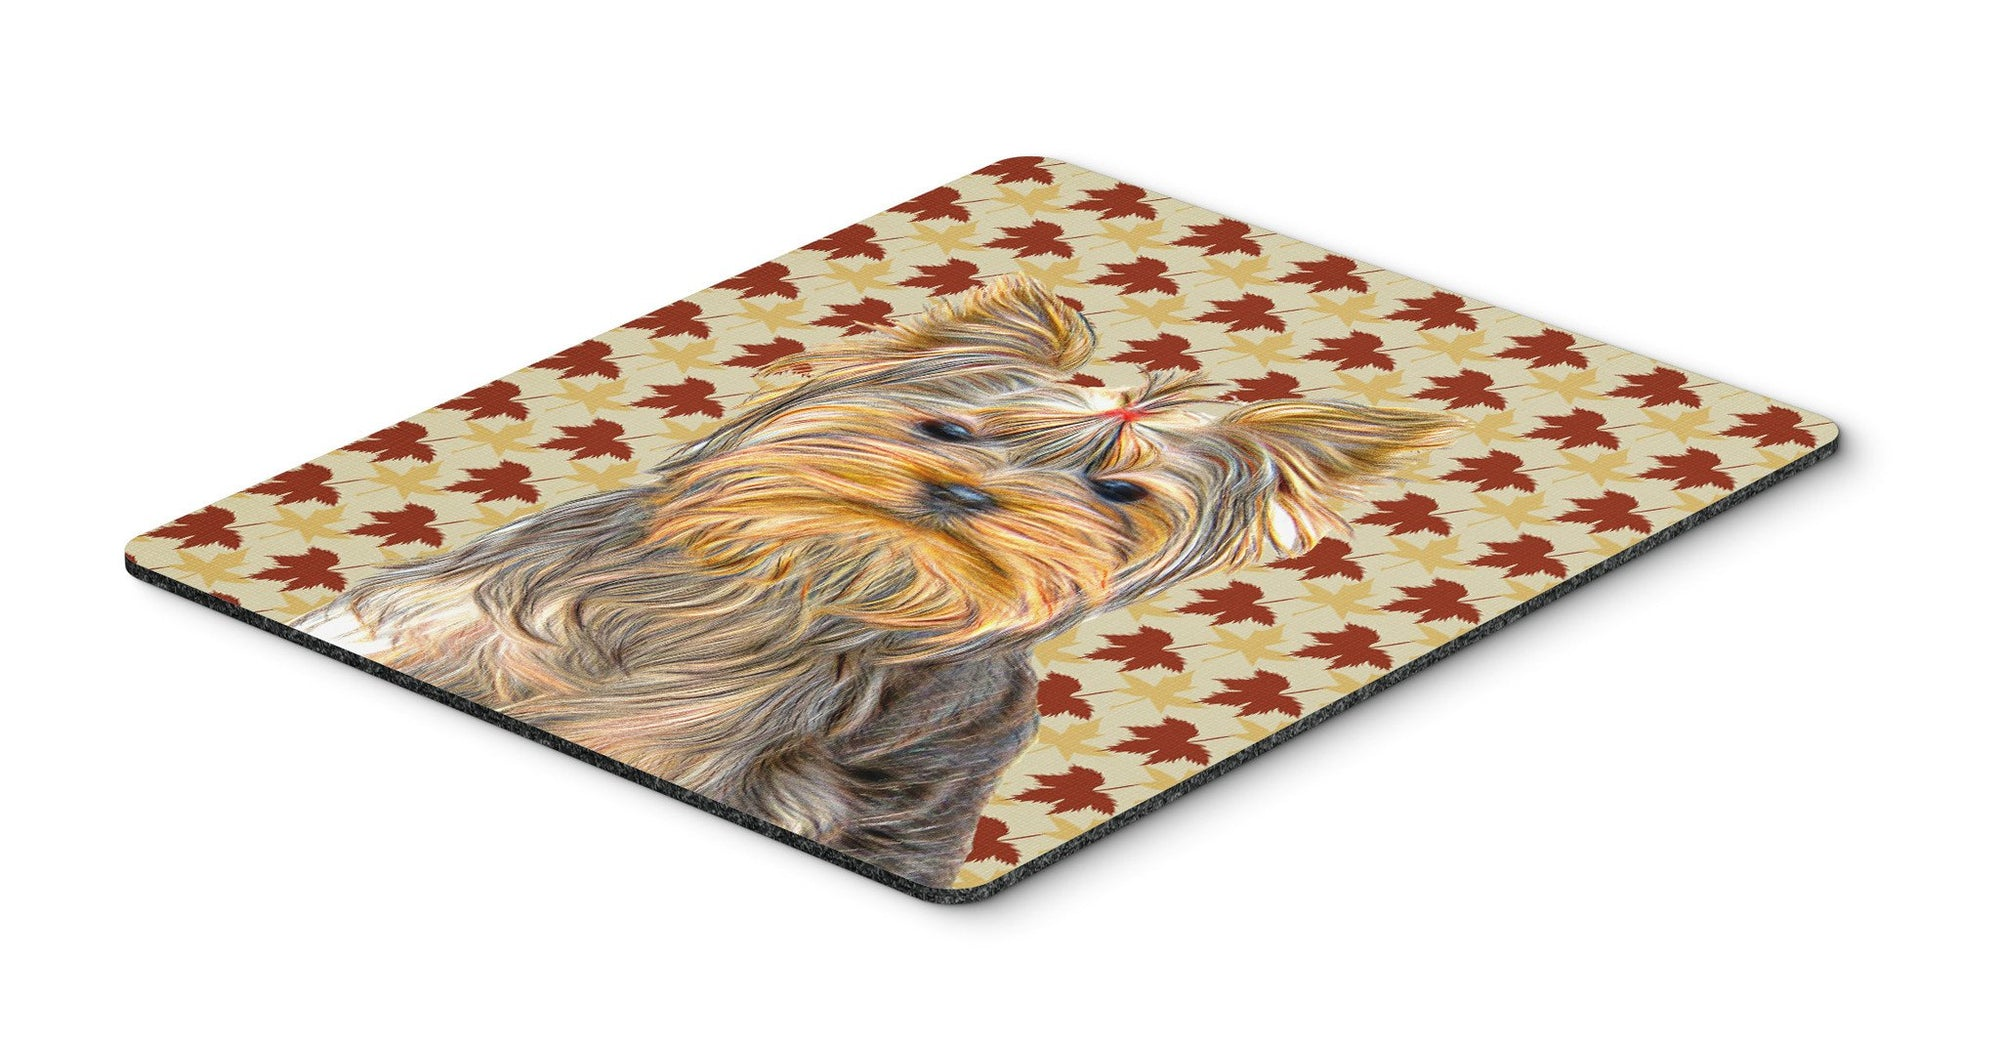 Buy this Fall Leaves Yorkie / Yorkshire Terrier Mouse Pad, Hot Pad or Trivet KJ1205MP